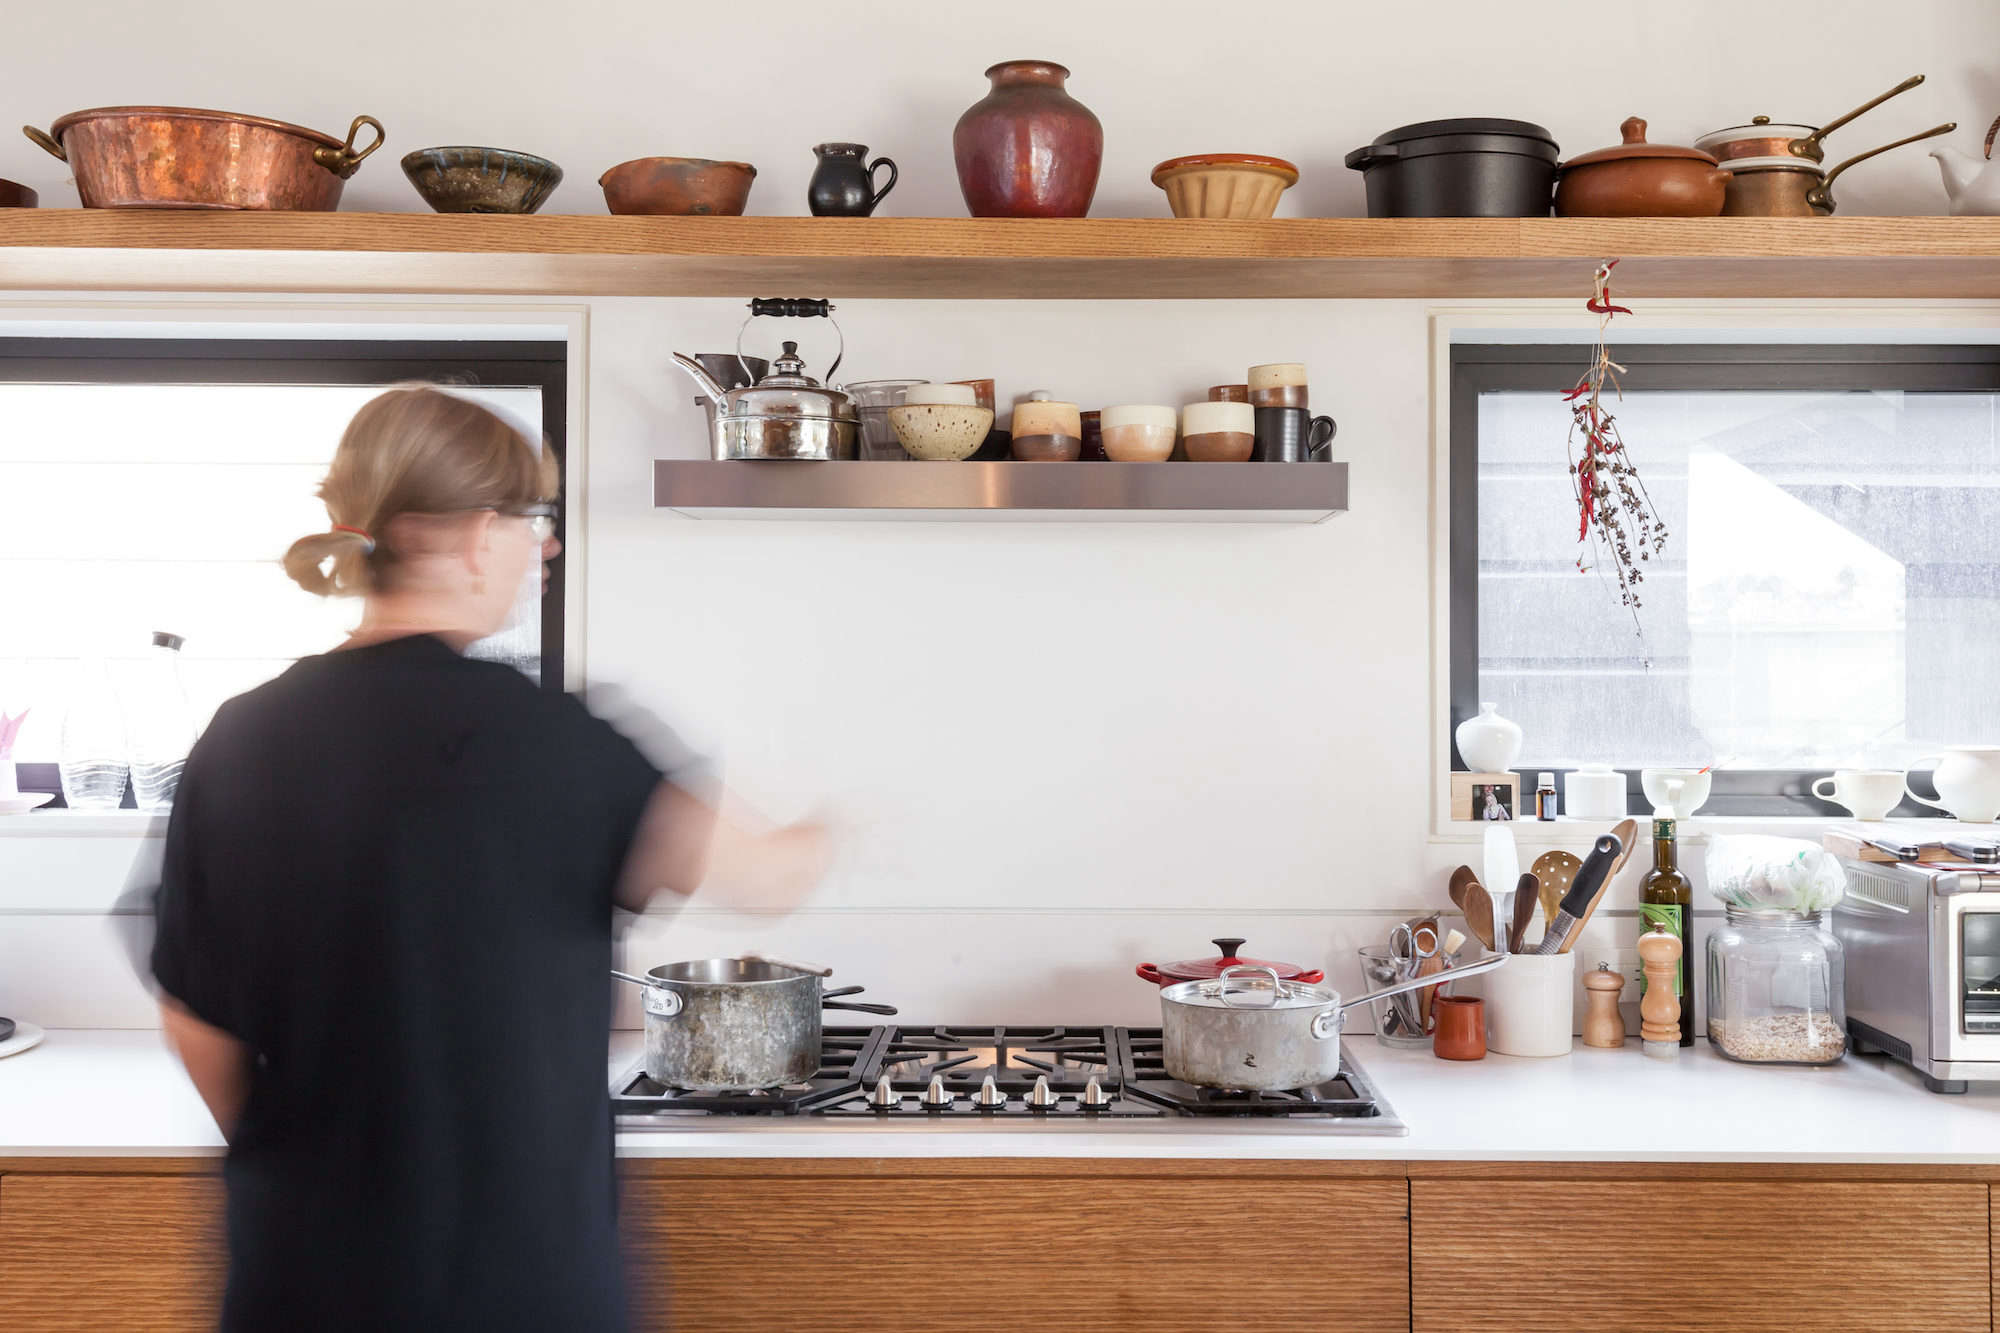 Awesome Tour The Home Kitchen Of Tartine Owners Elisabeth Prueitt And Chad Robertson